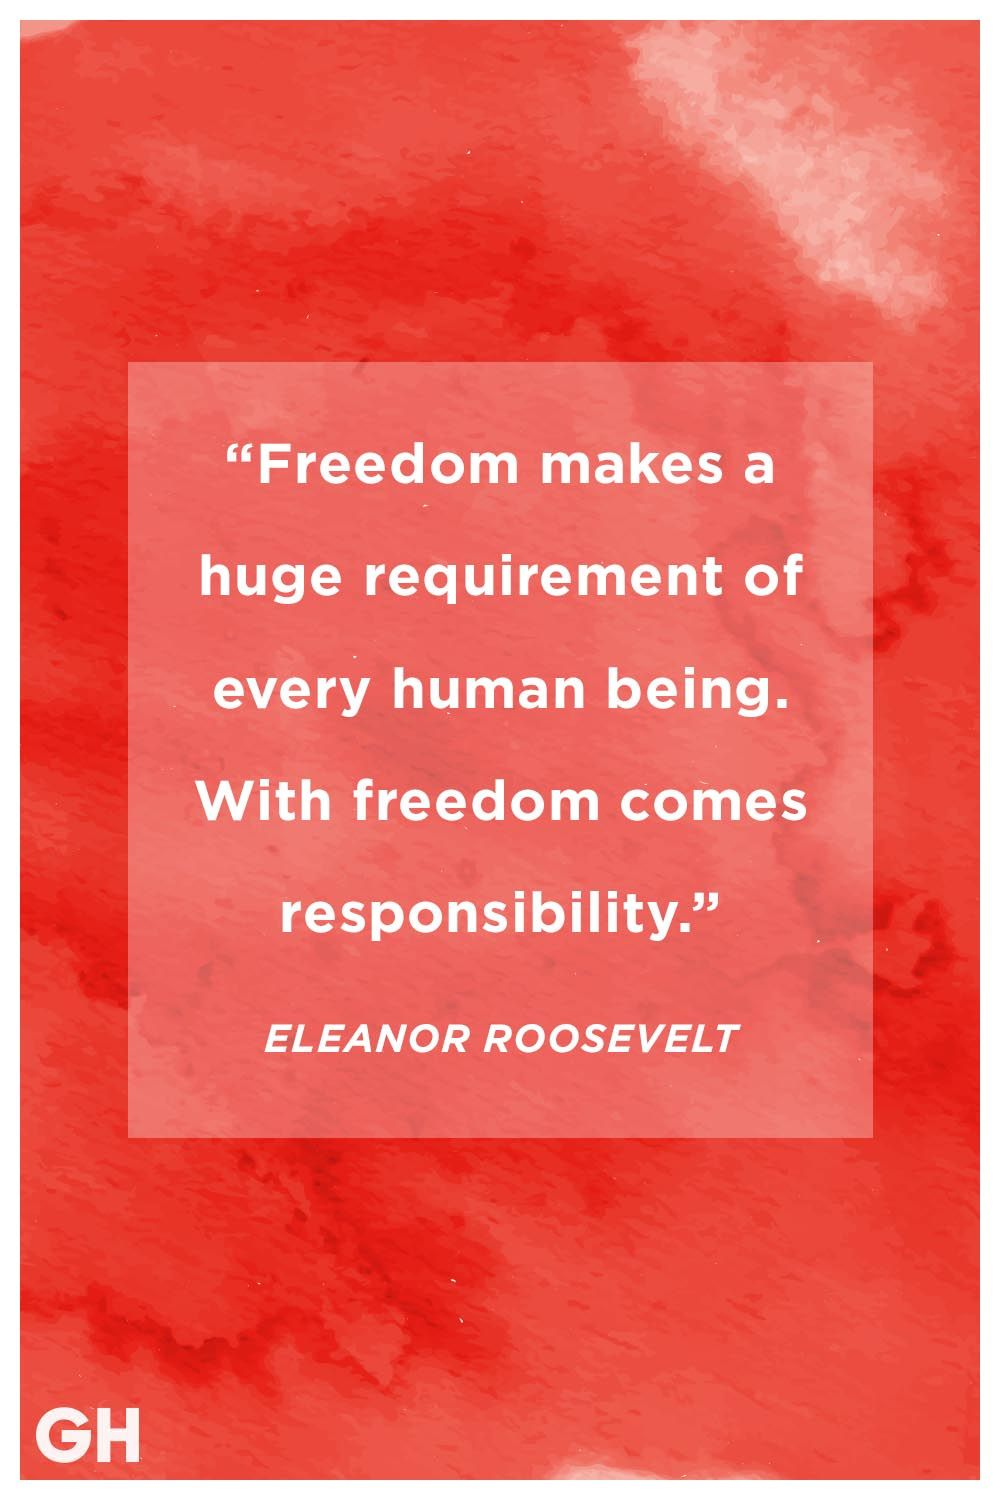 eleanor roosevelt memorial day quote